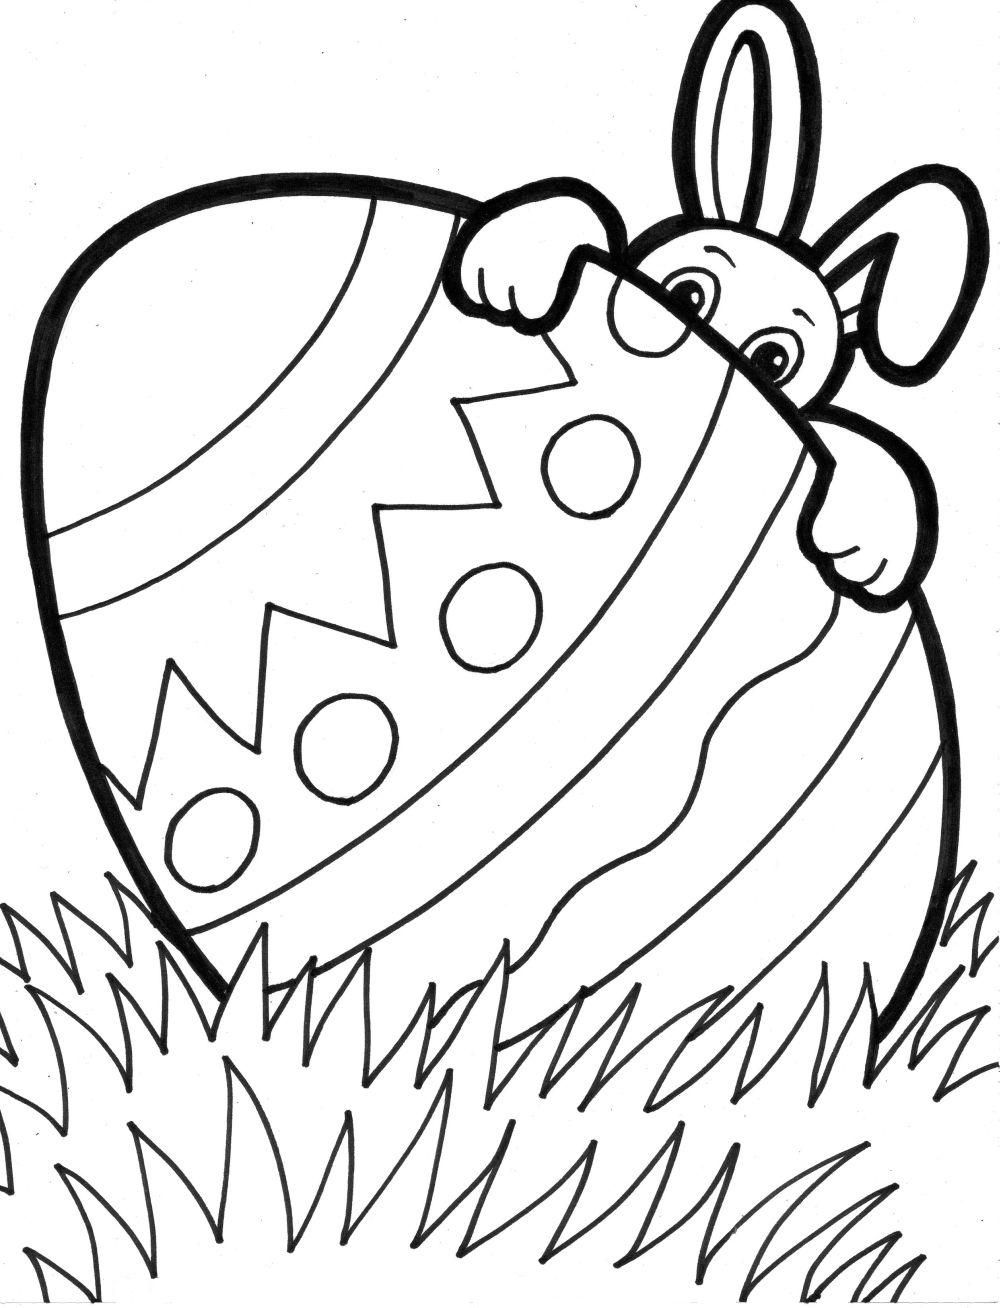 16 super cute and free easter printable coloring pages for kids - Colouring In Pictures For Kids